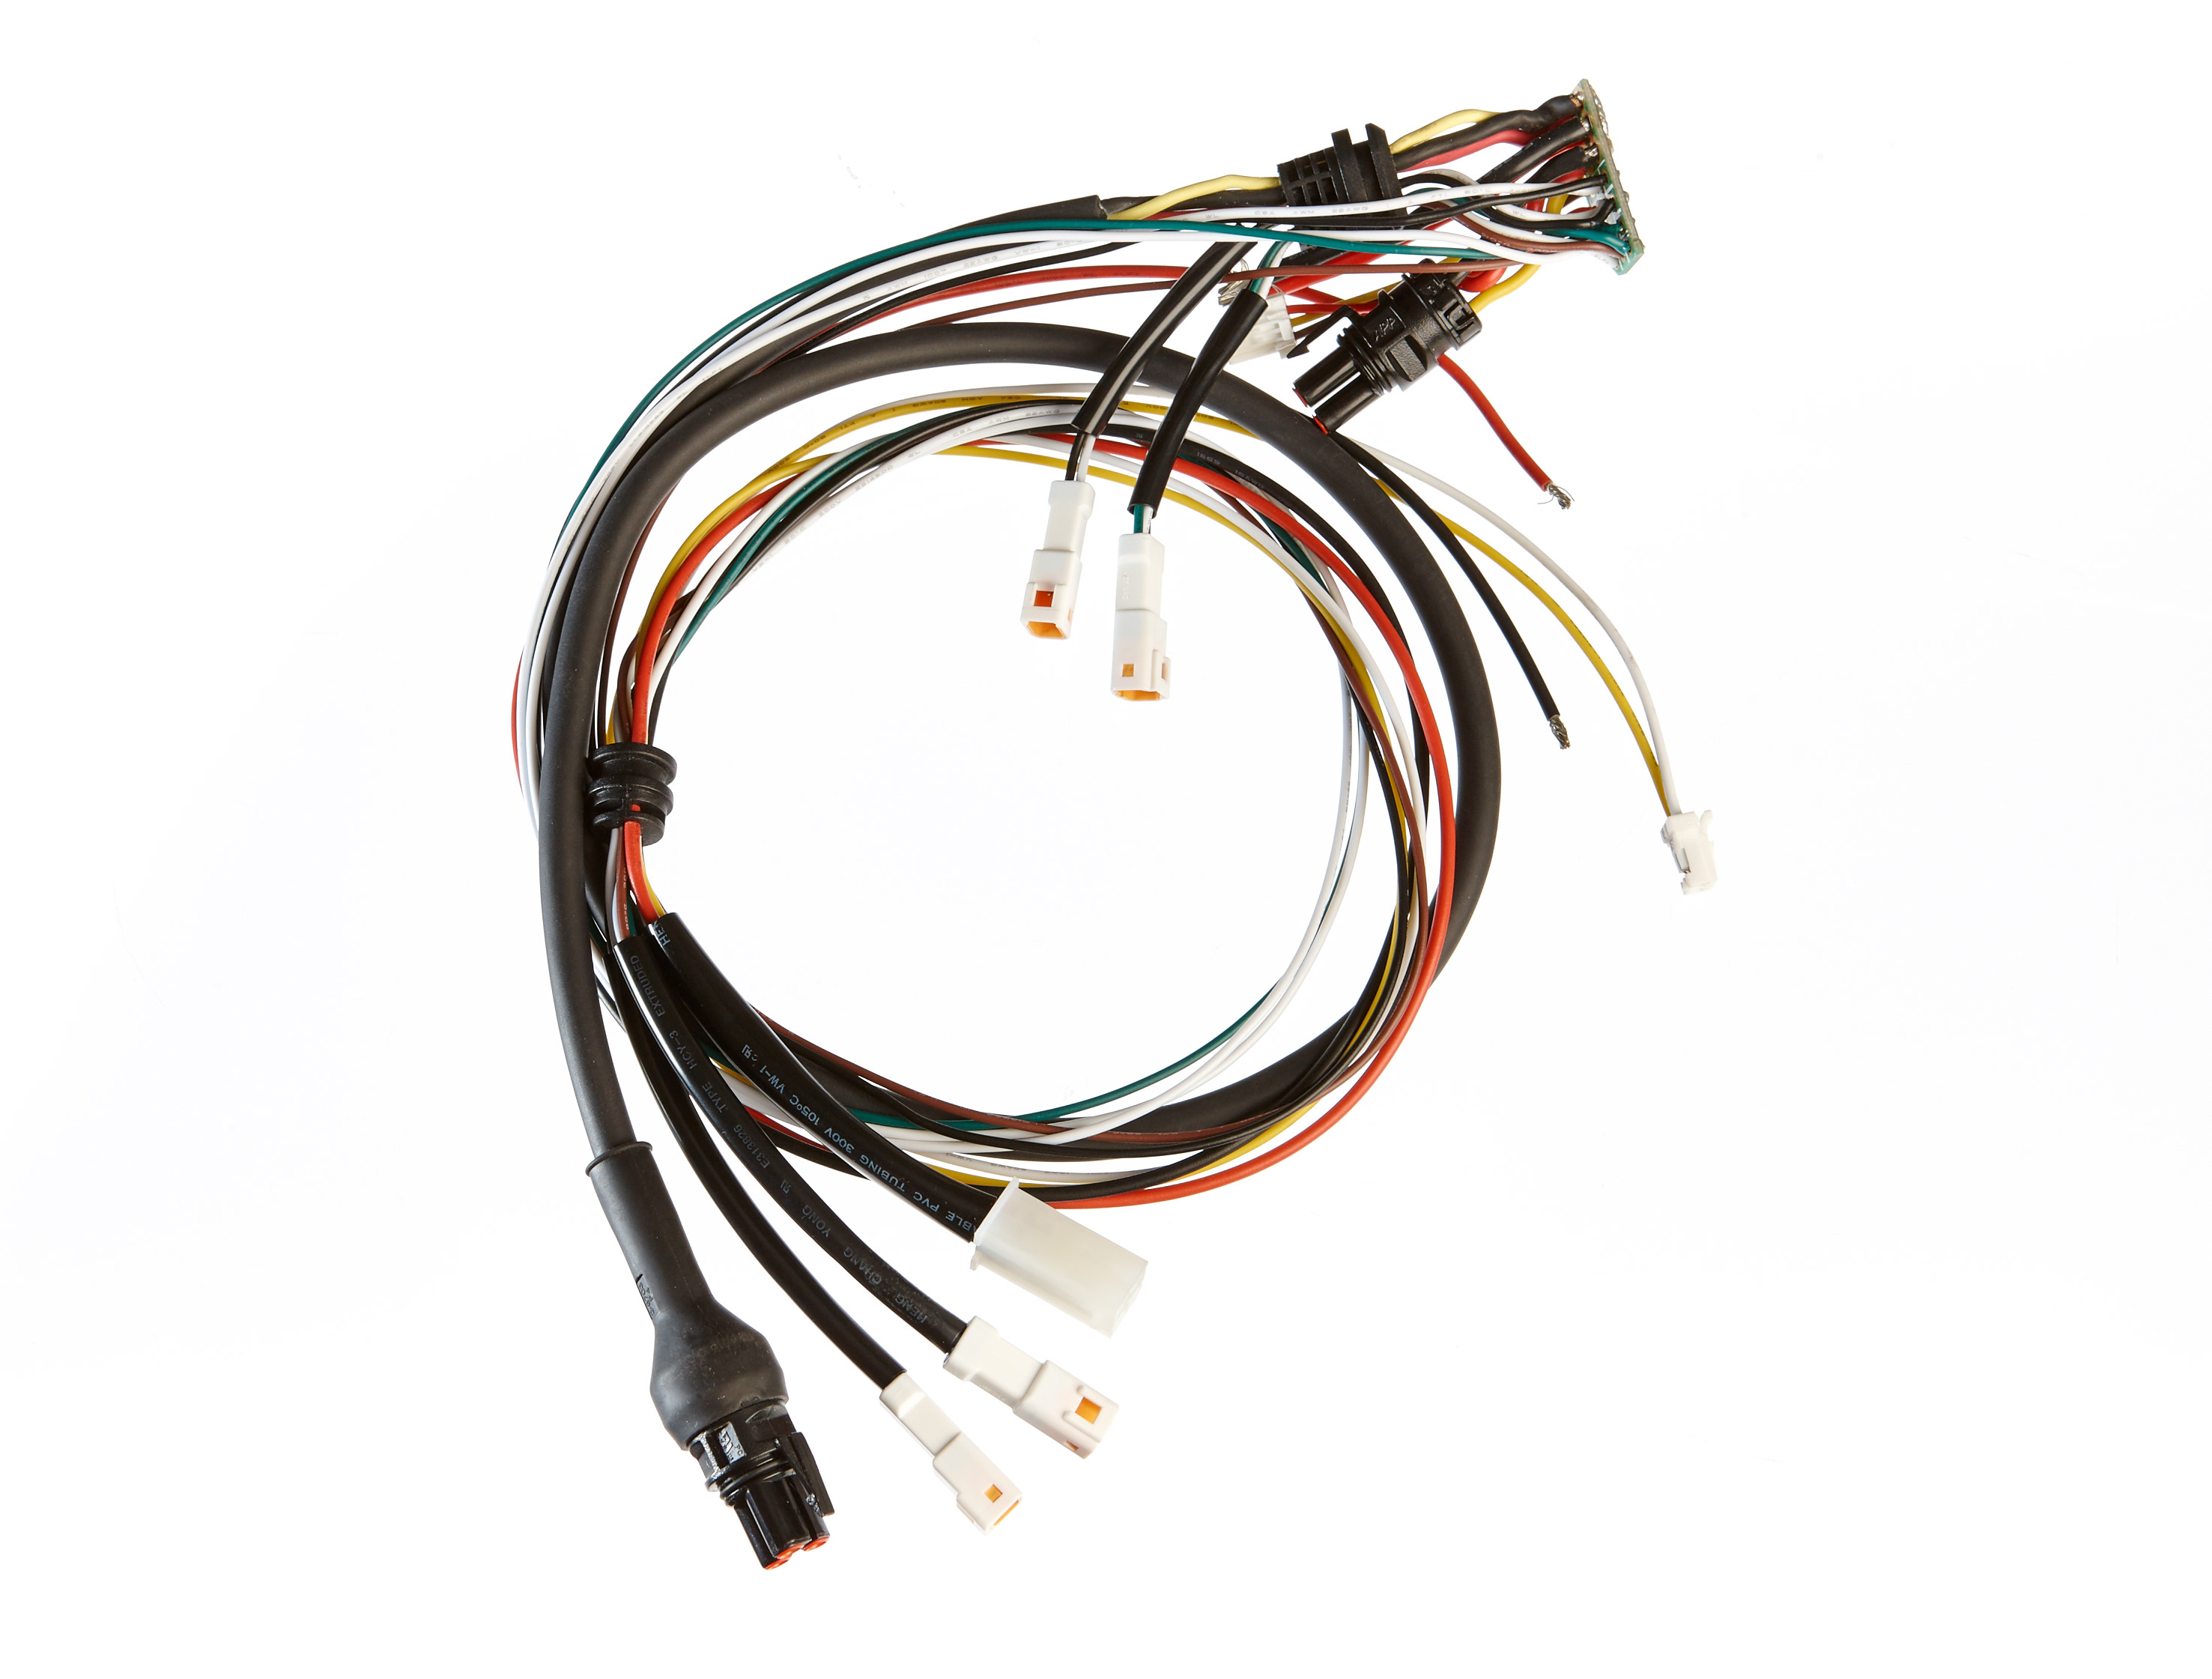 aerospace wire harness assembly image wire harness assembly wire harness cable assembly | gct